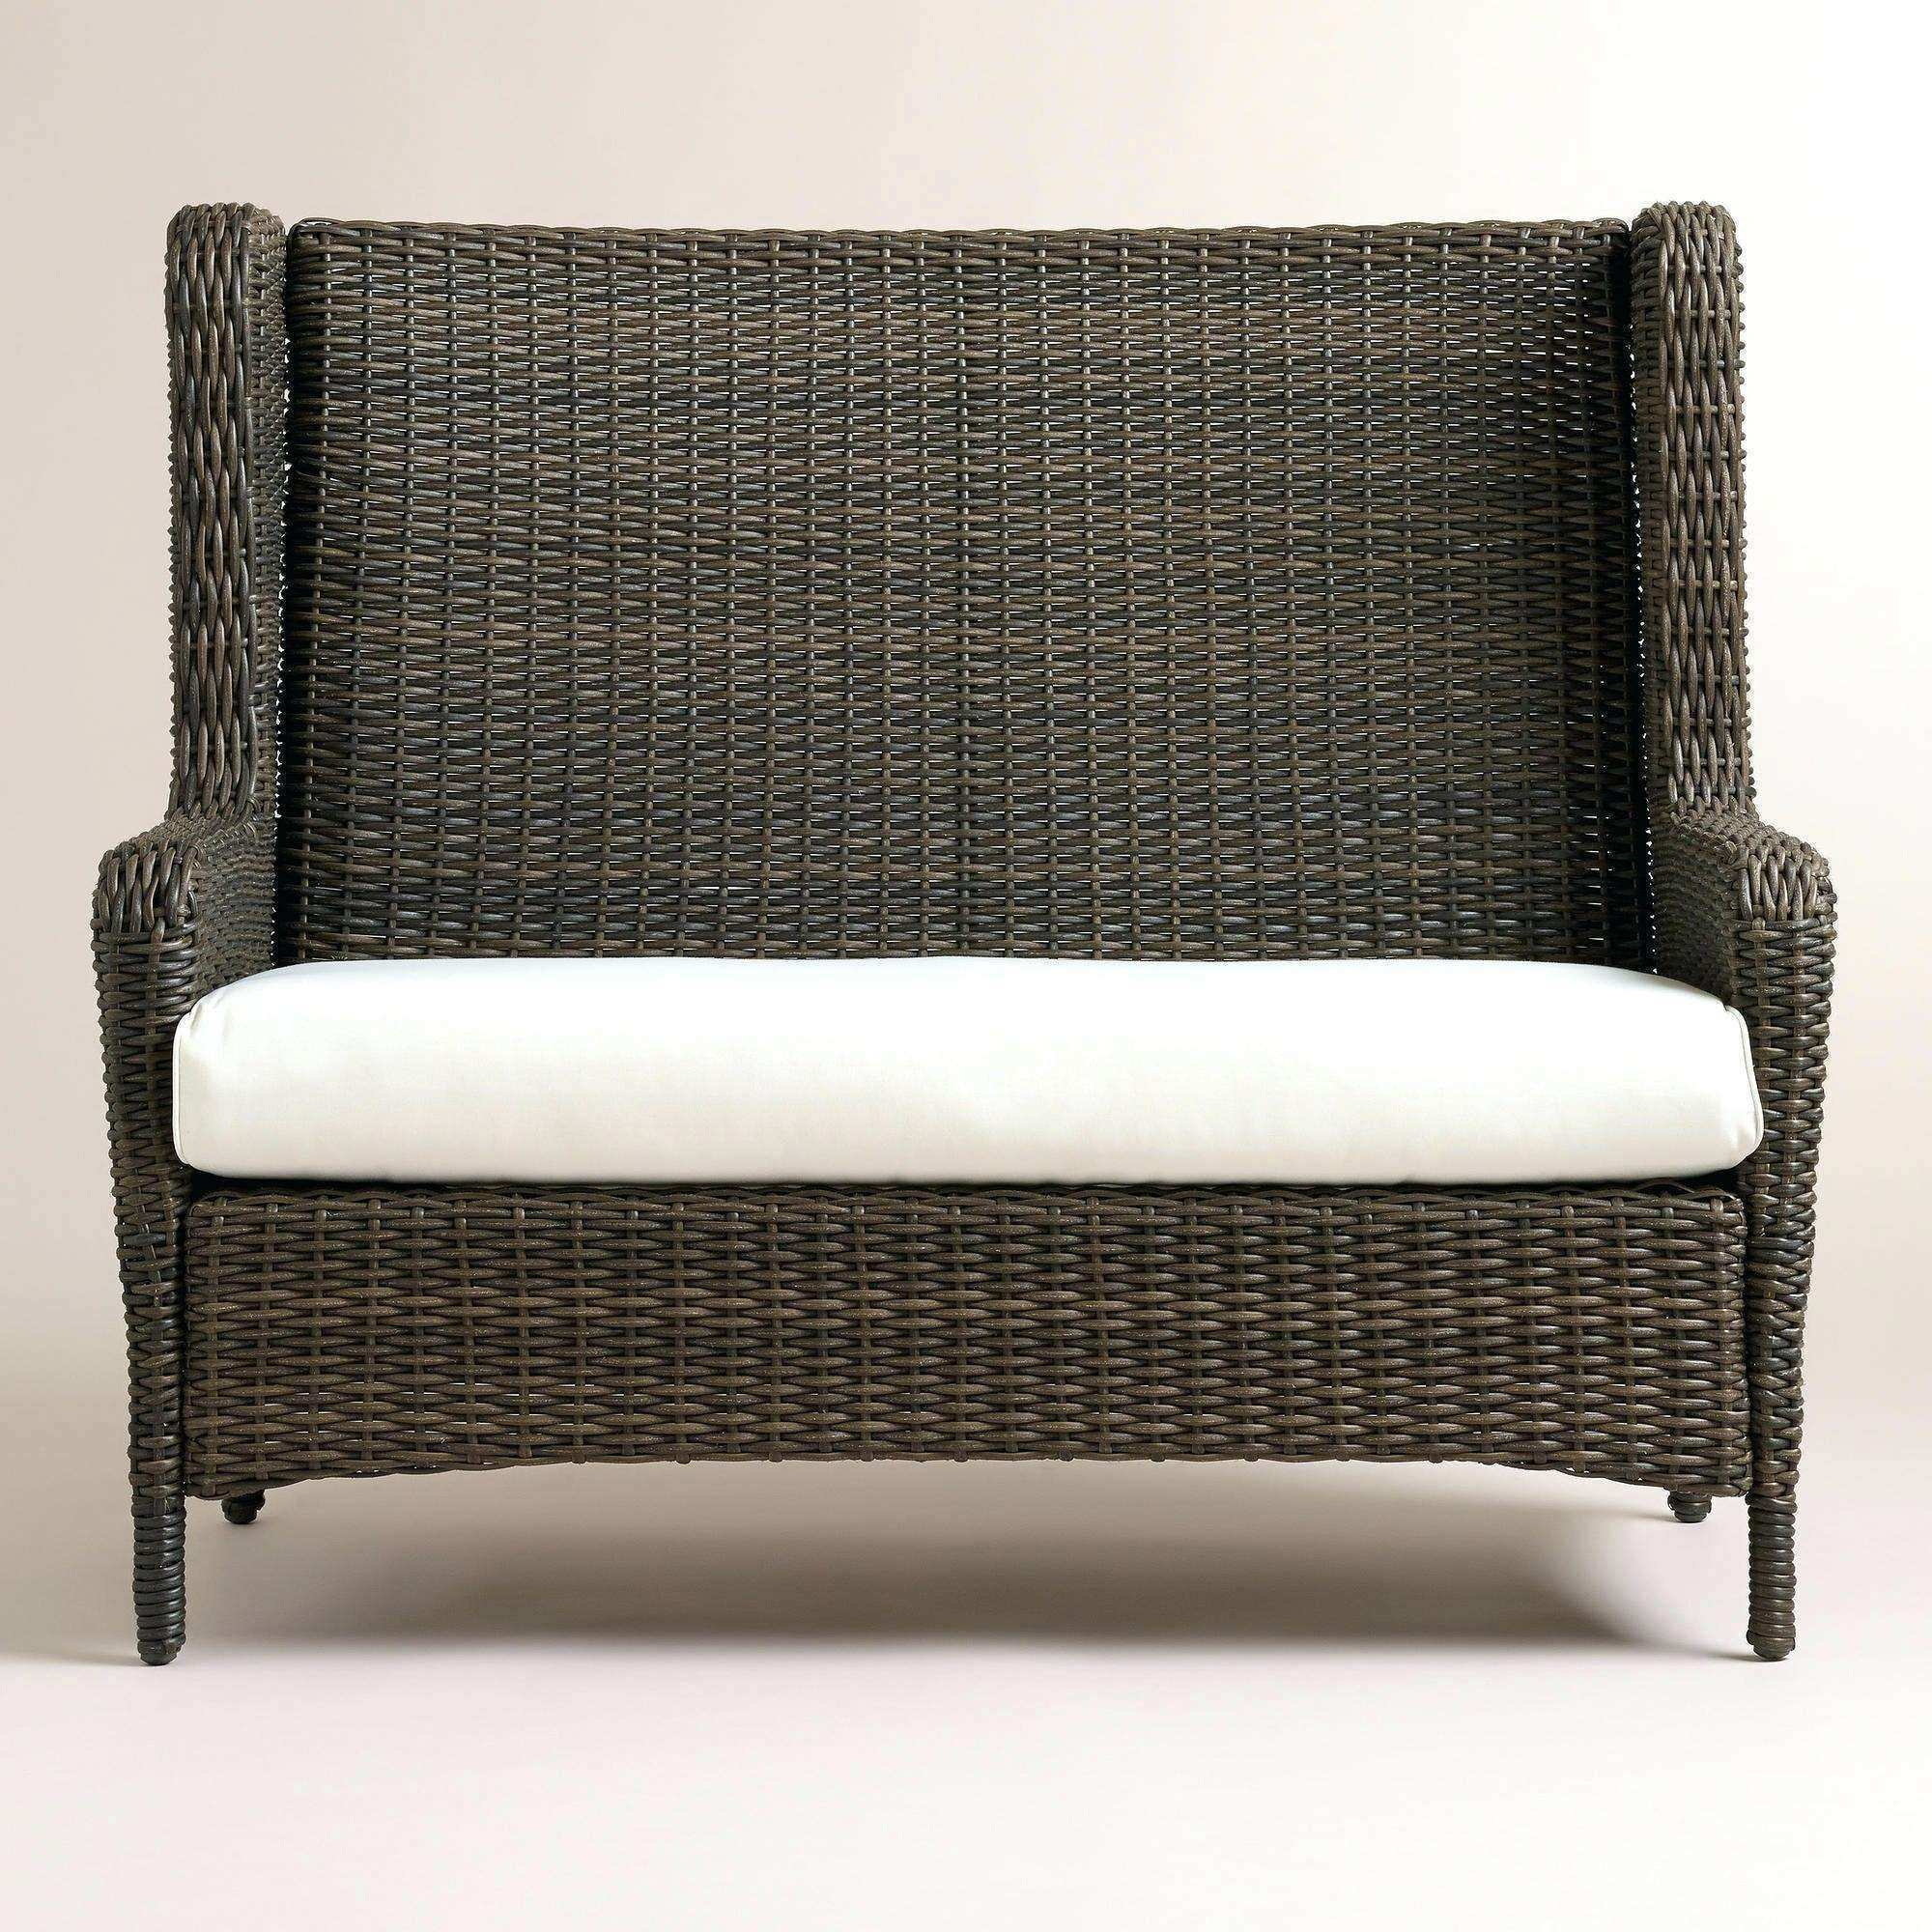 Picture Frames for Sale Philippines Inspirational Steel Frame sofa